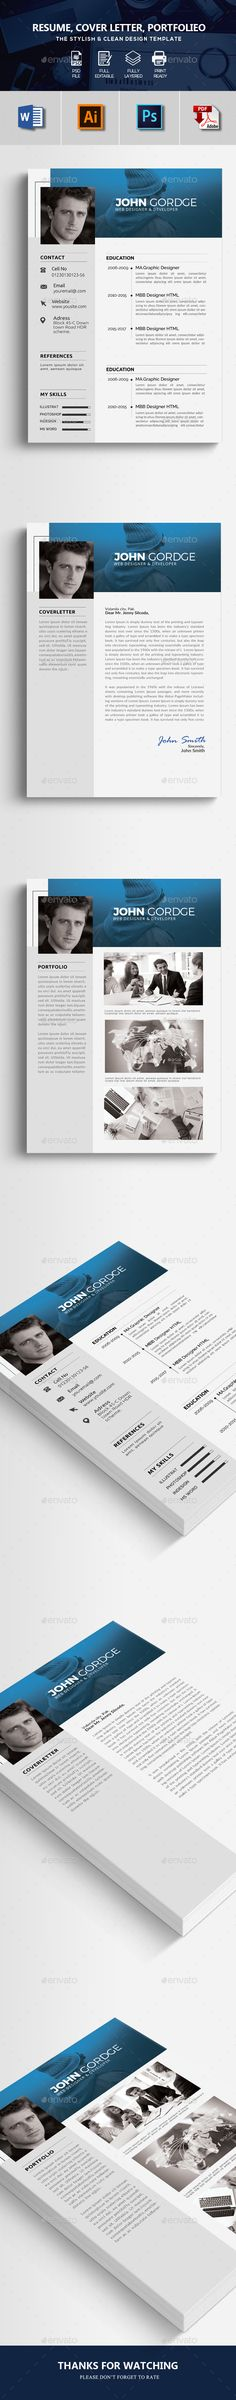 New Professional CV \/ Resume Templates with Cover Letter Design - awesome resumes templates